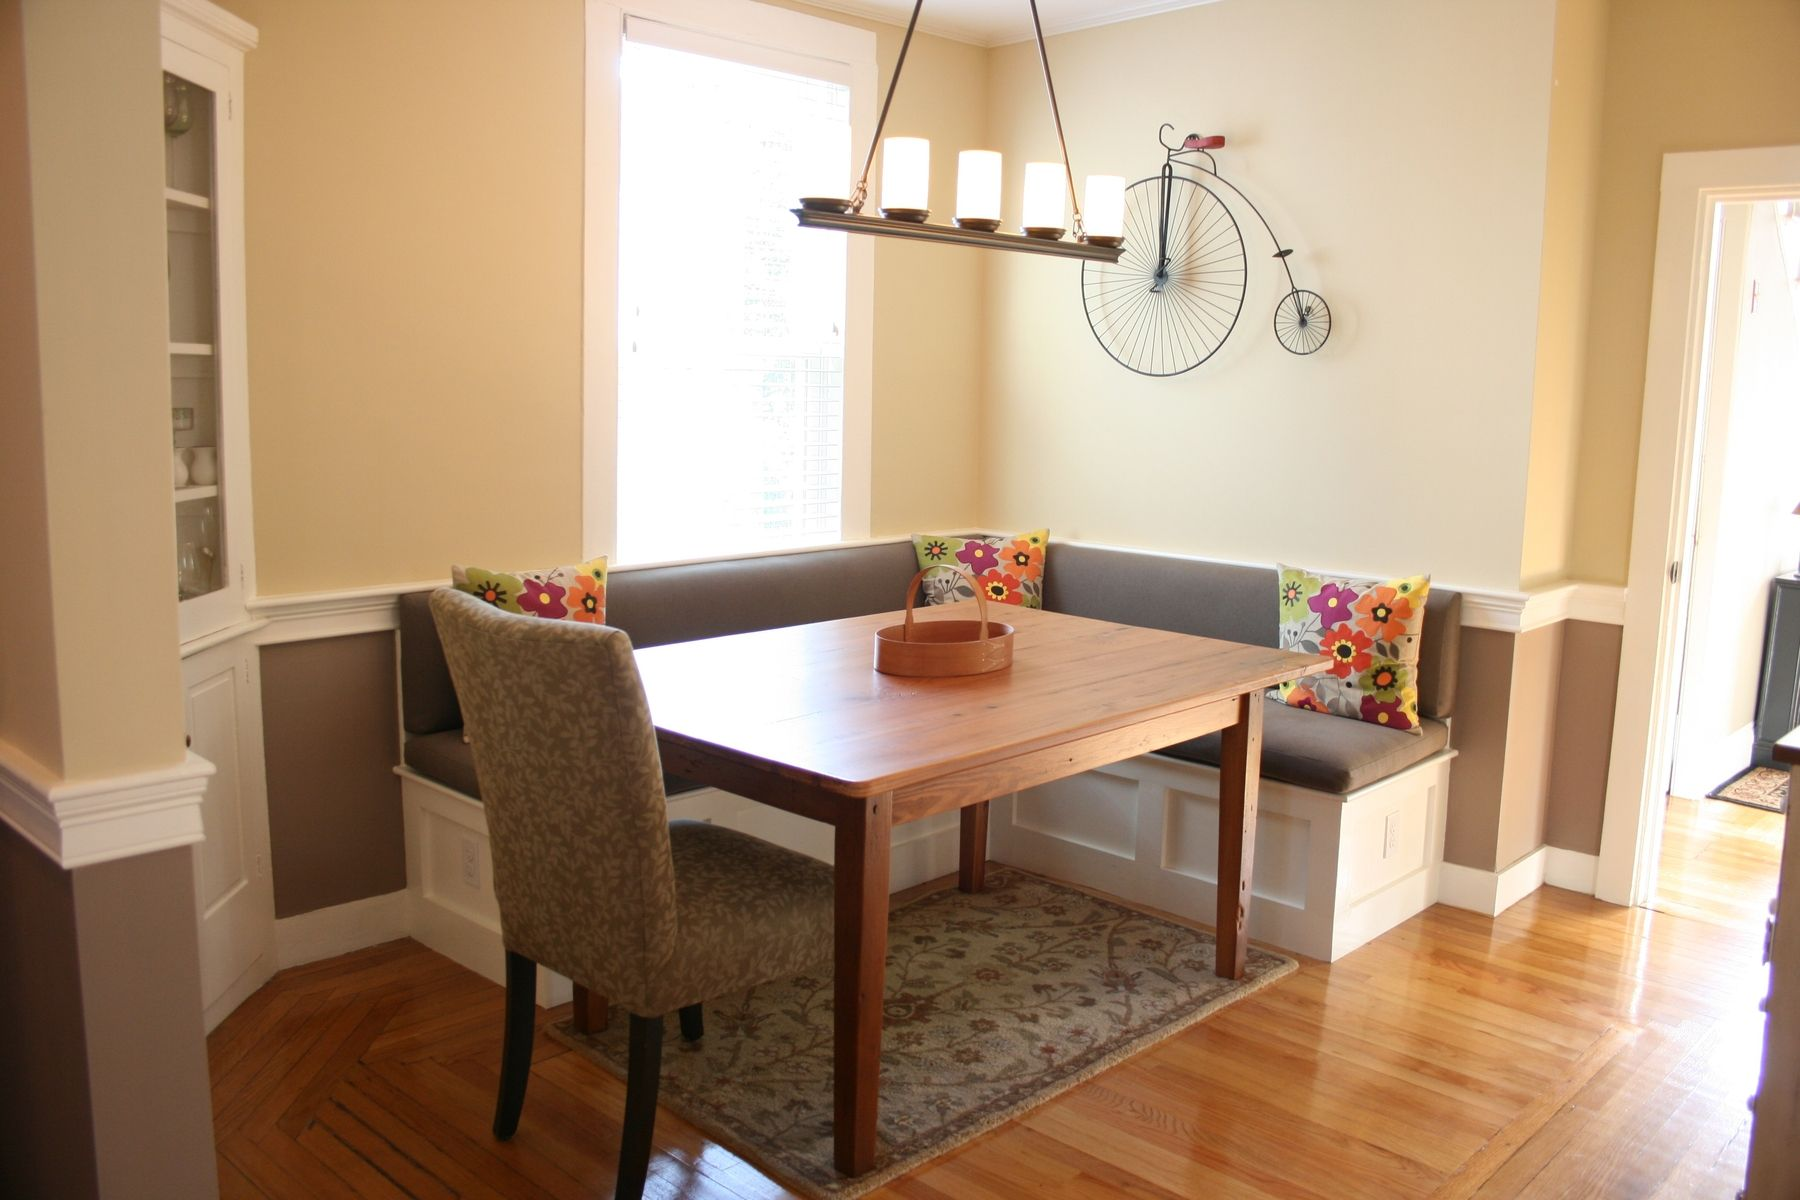 Best banquette bench design amazing furniture ideas charming